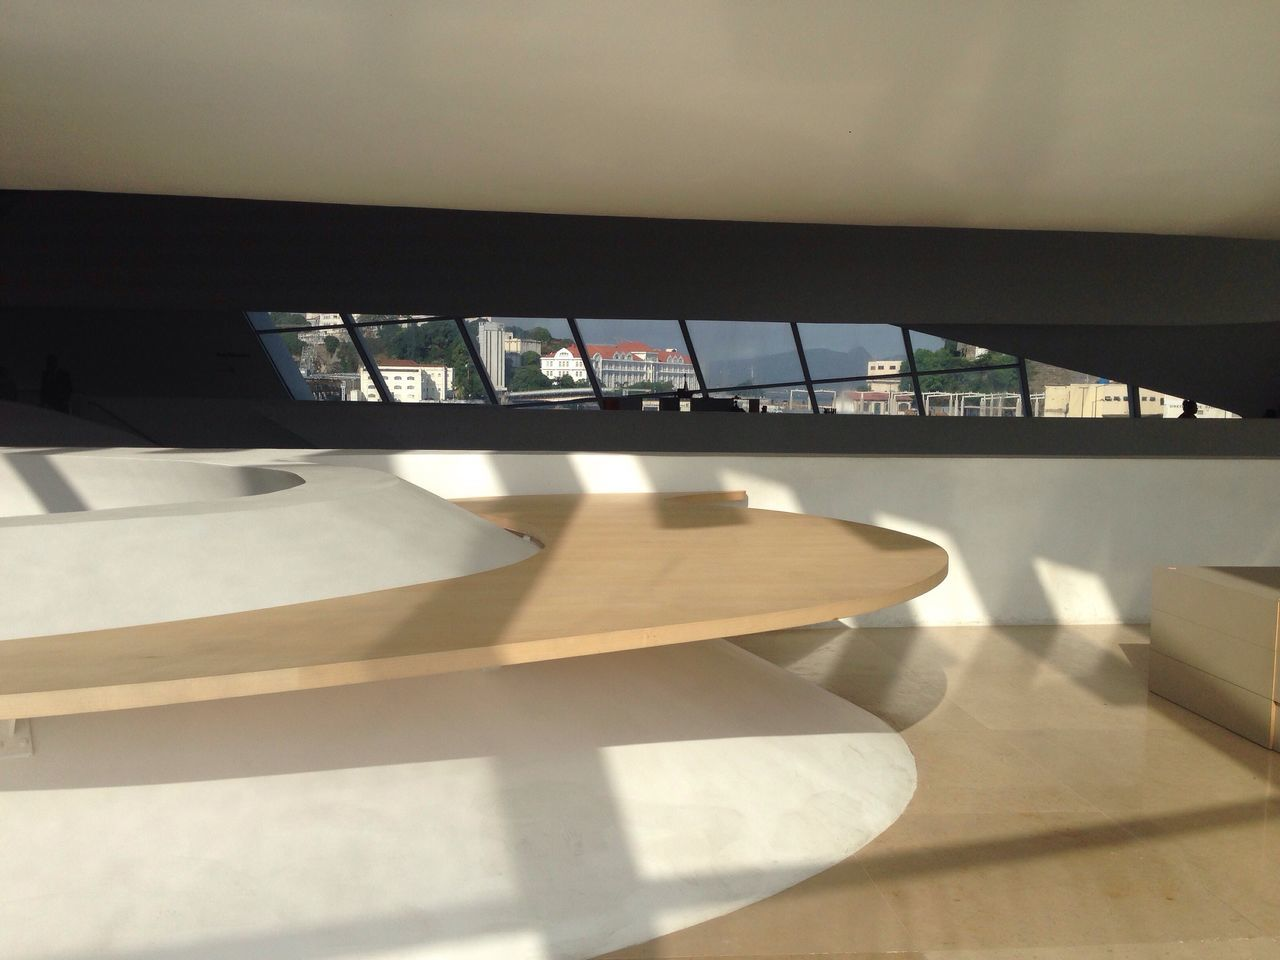 indoors, table, sunlight, no people, chair, day, window, education, shadow, architecture, library, close-up